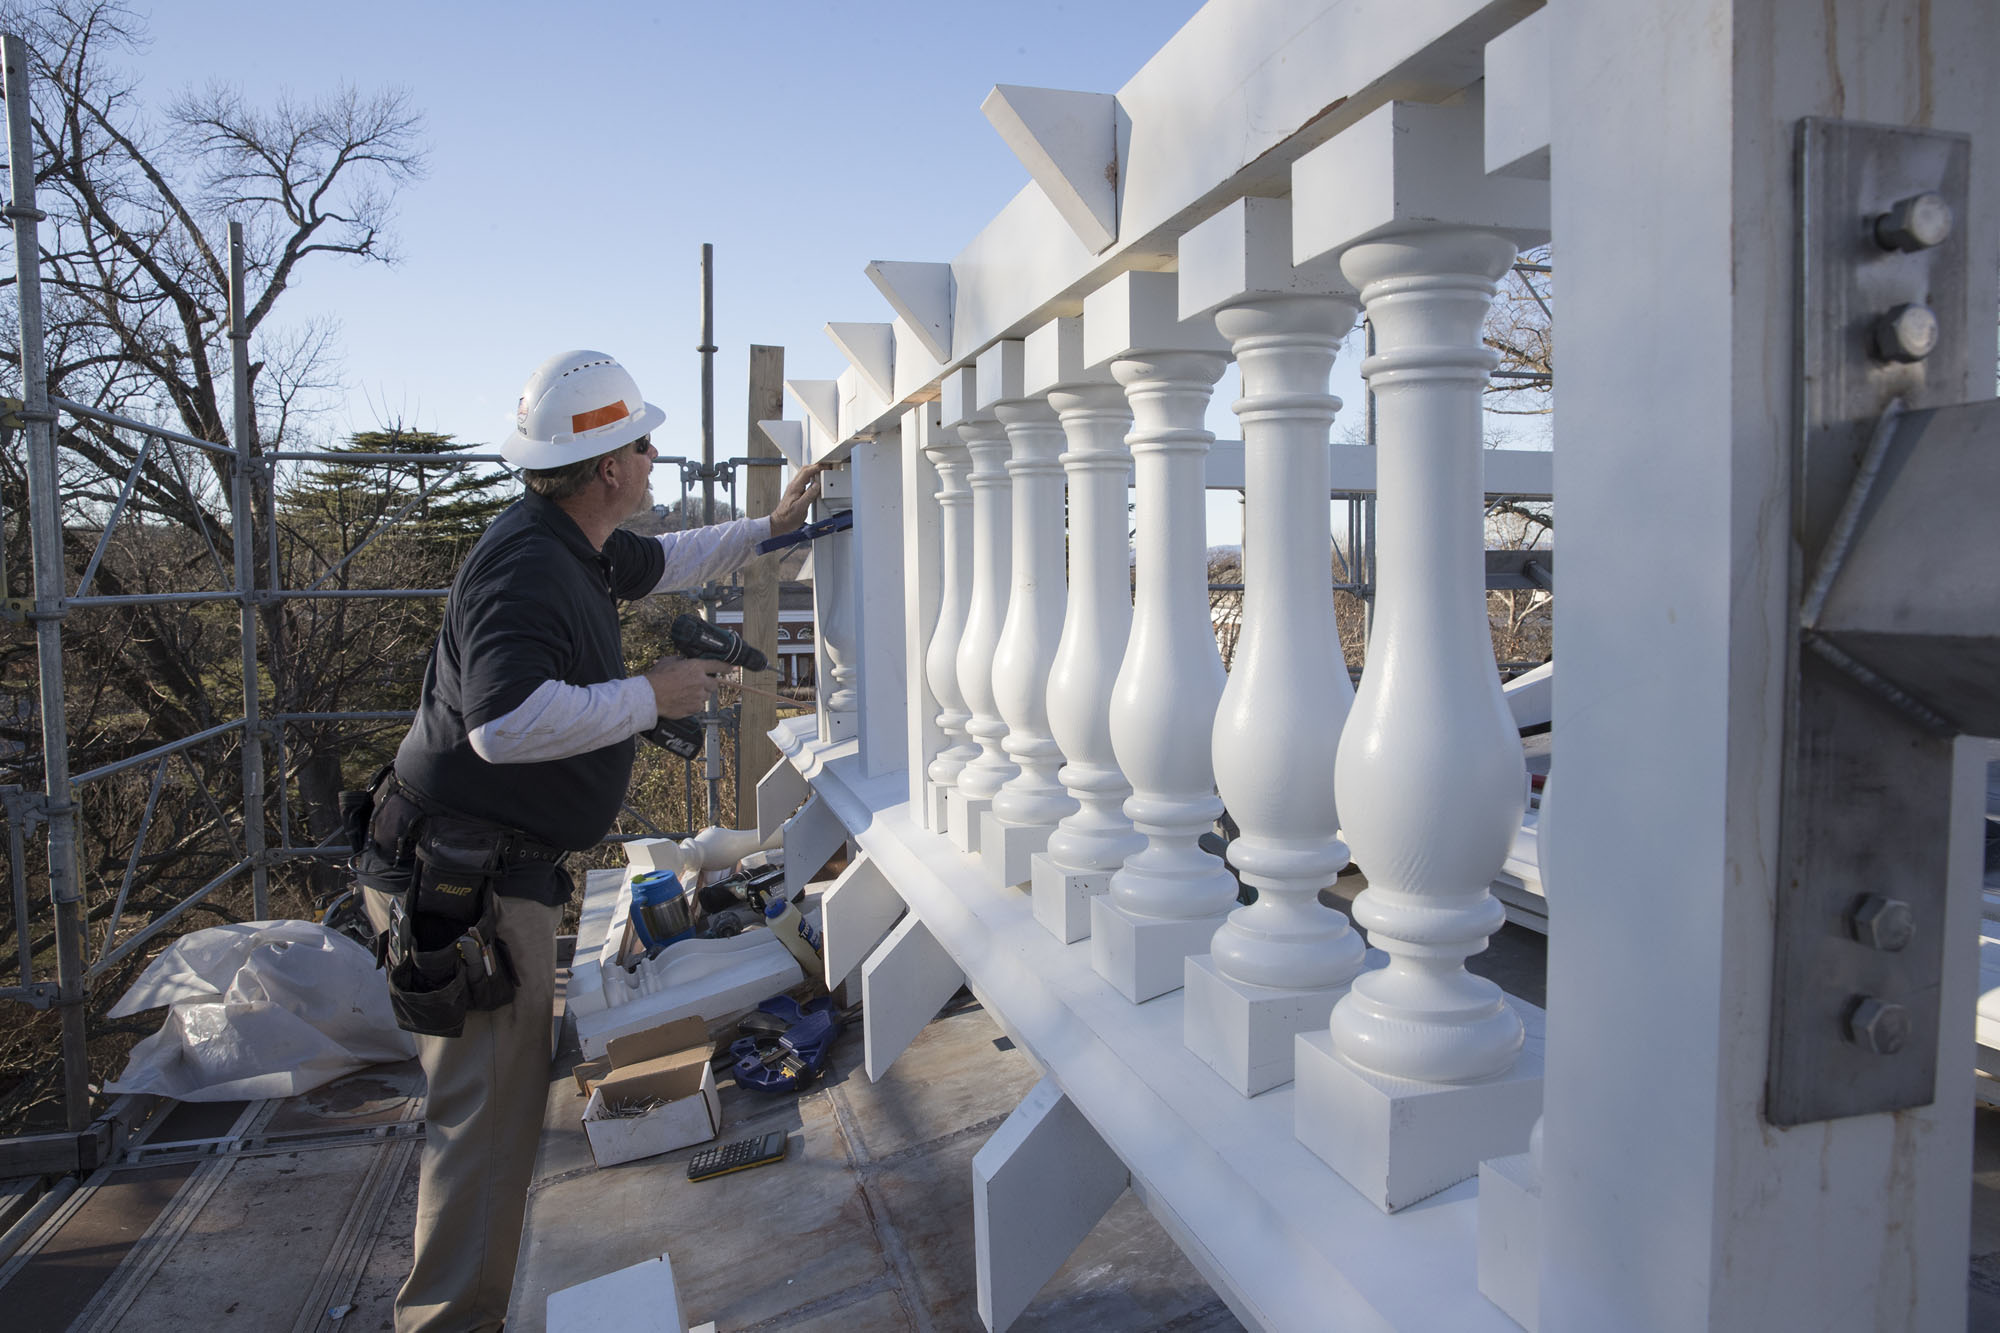 University workers install the new balustrade on the roof of Pavilon III, restoring its original appearance.